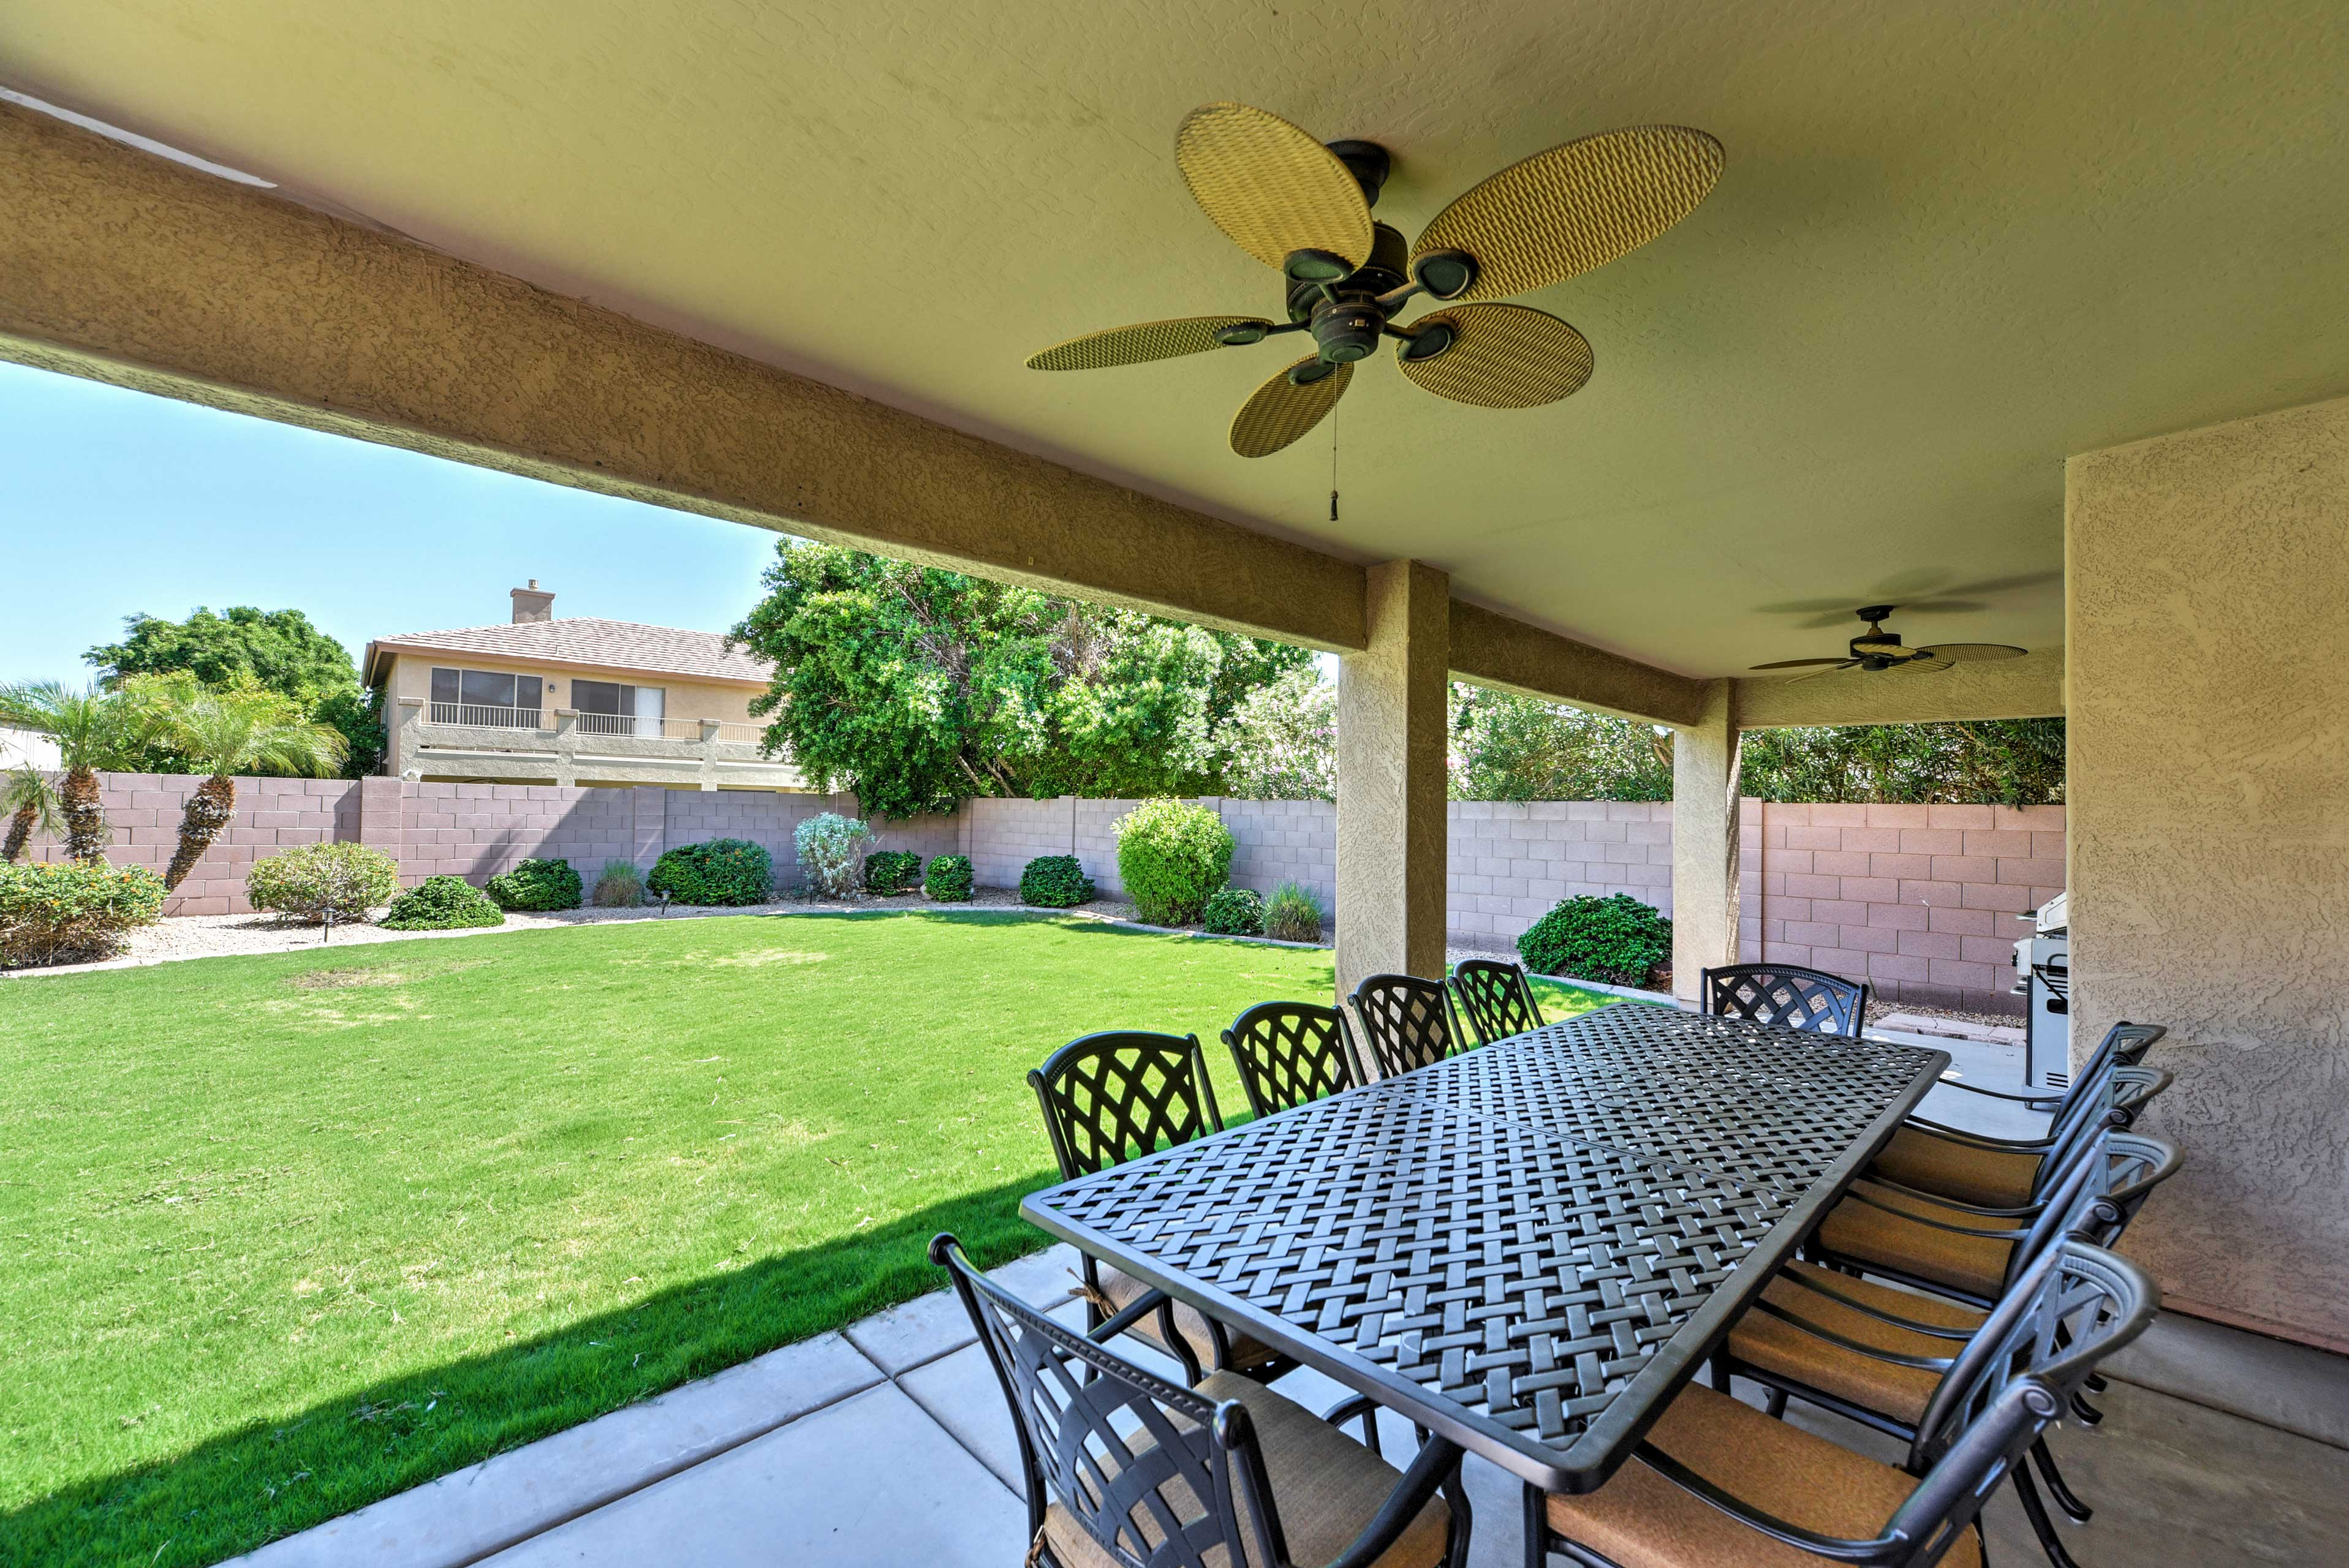 Fire up the grill and dine al fresco on the covered patio.